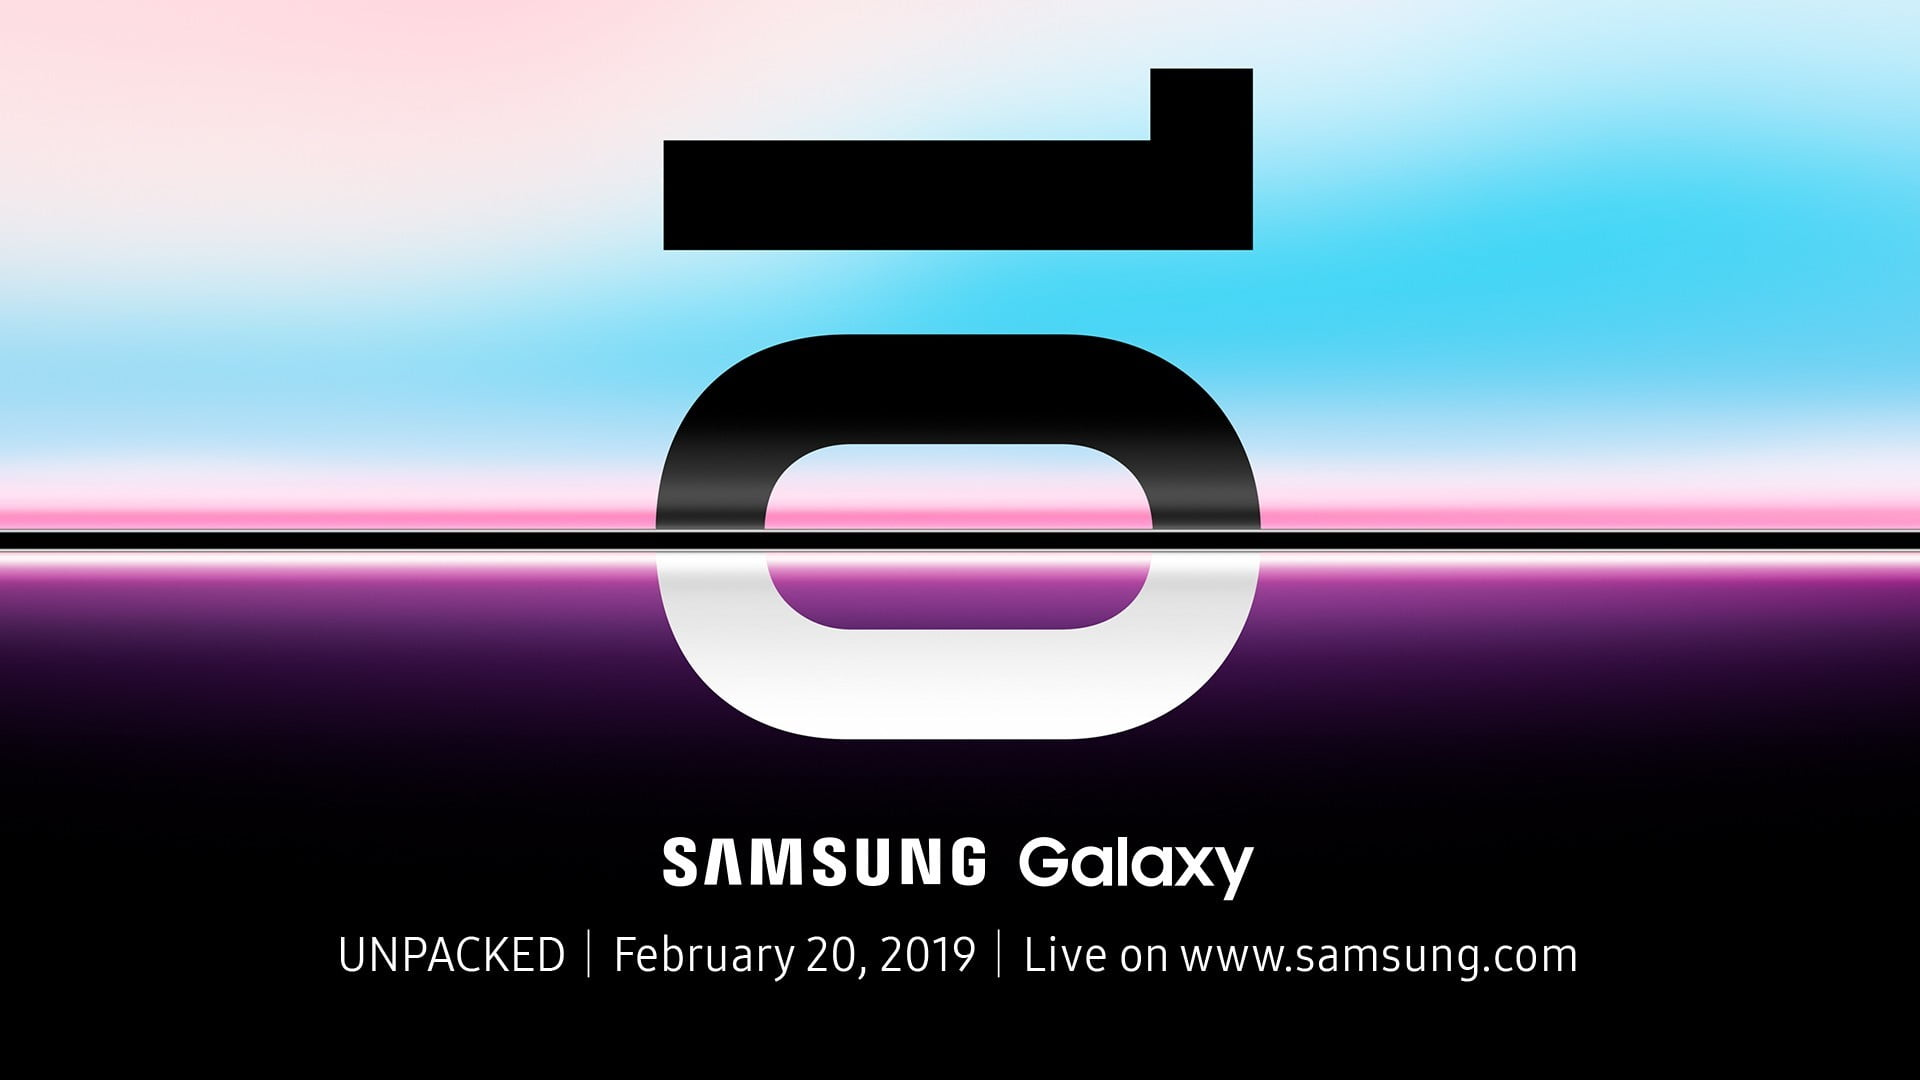 Galaxy S10 invitation